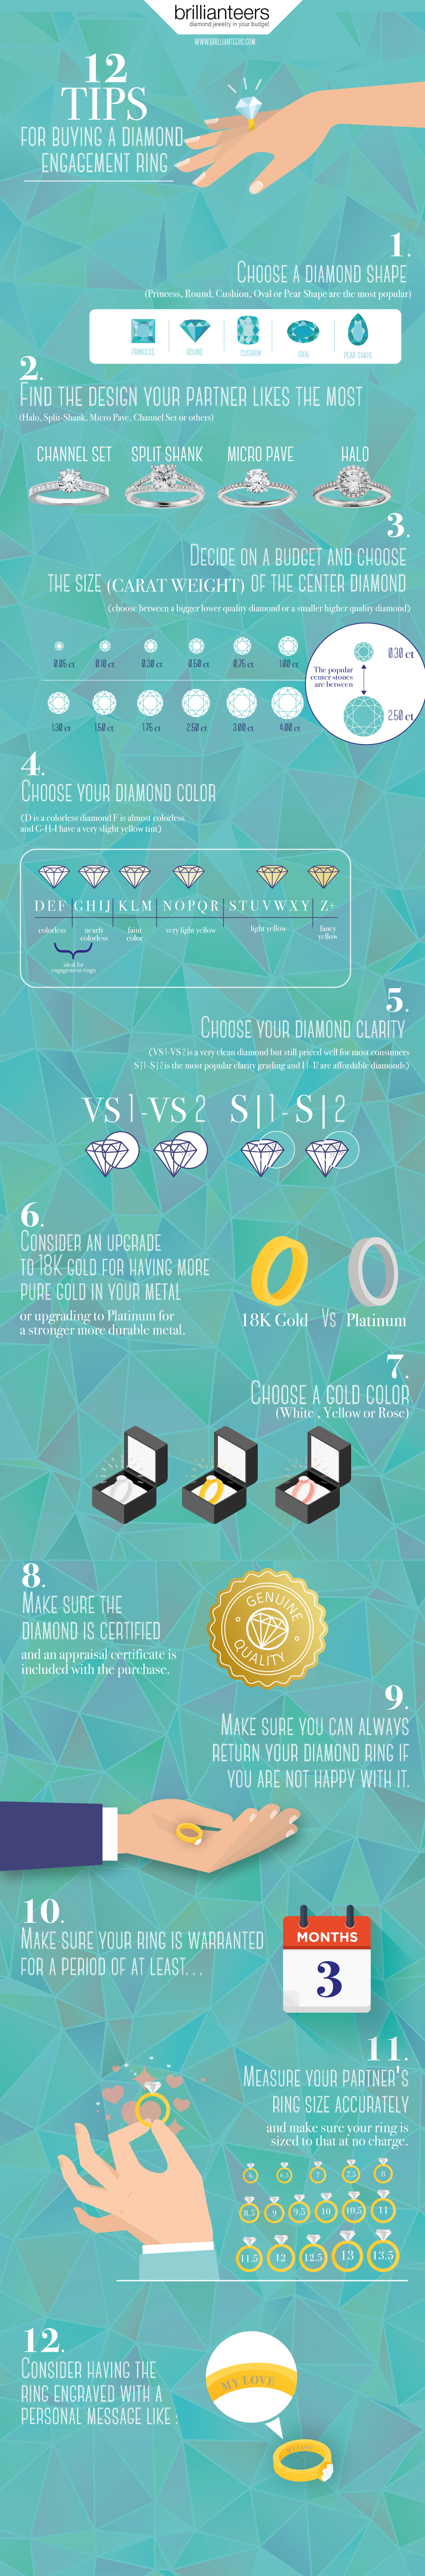 Infographic: 12 tips for buying a diamond engagement ring